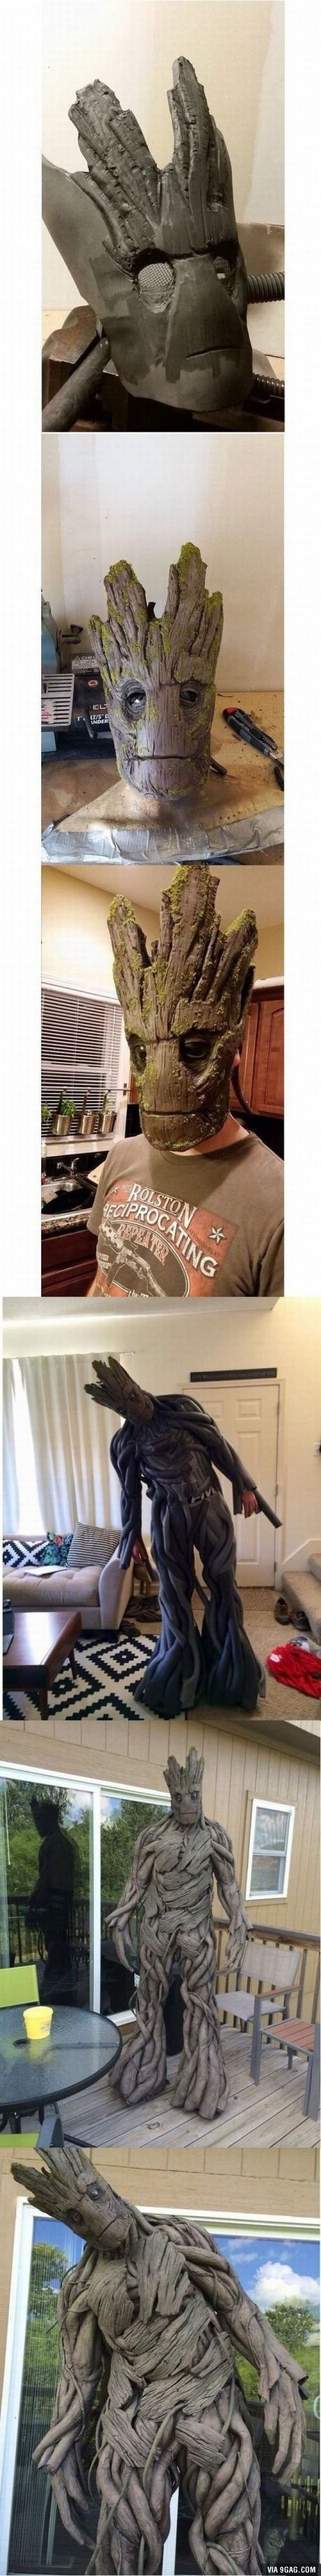 Groot Halloween / cosplay costume. (guardians of the galaxy)